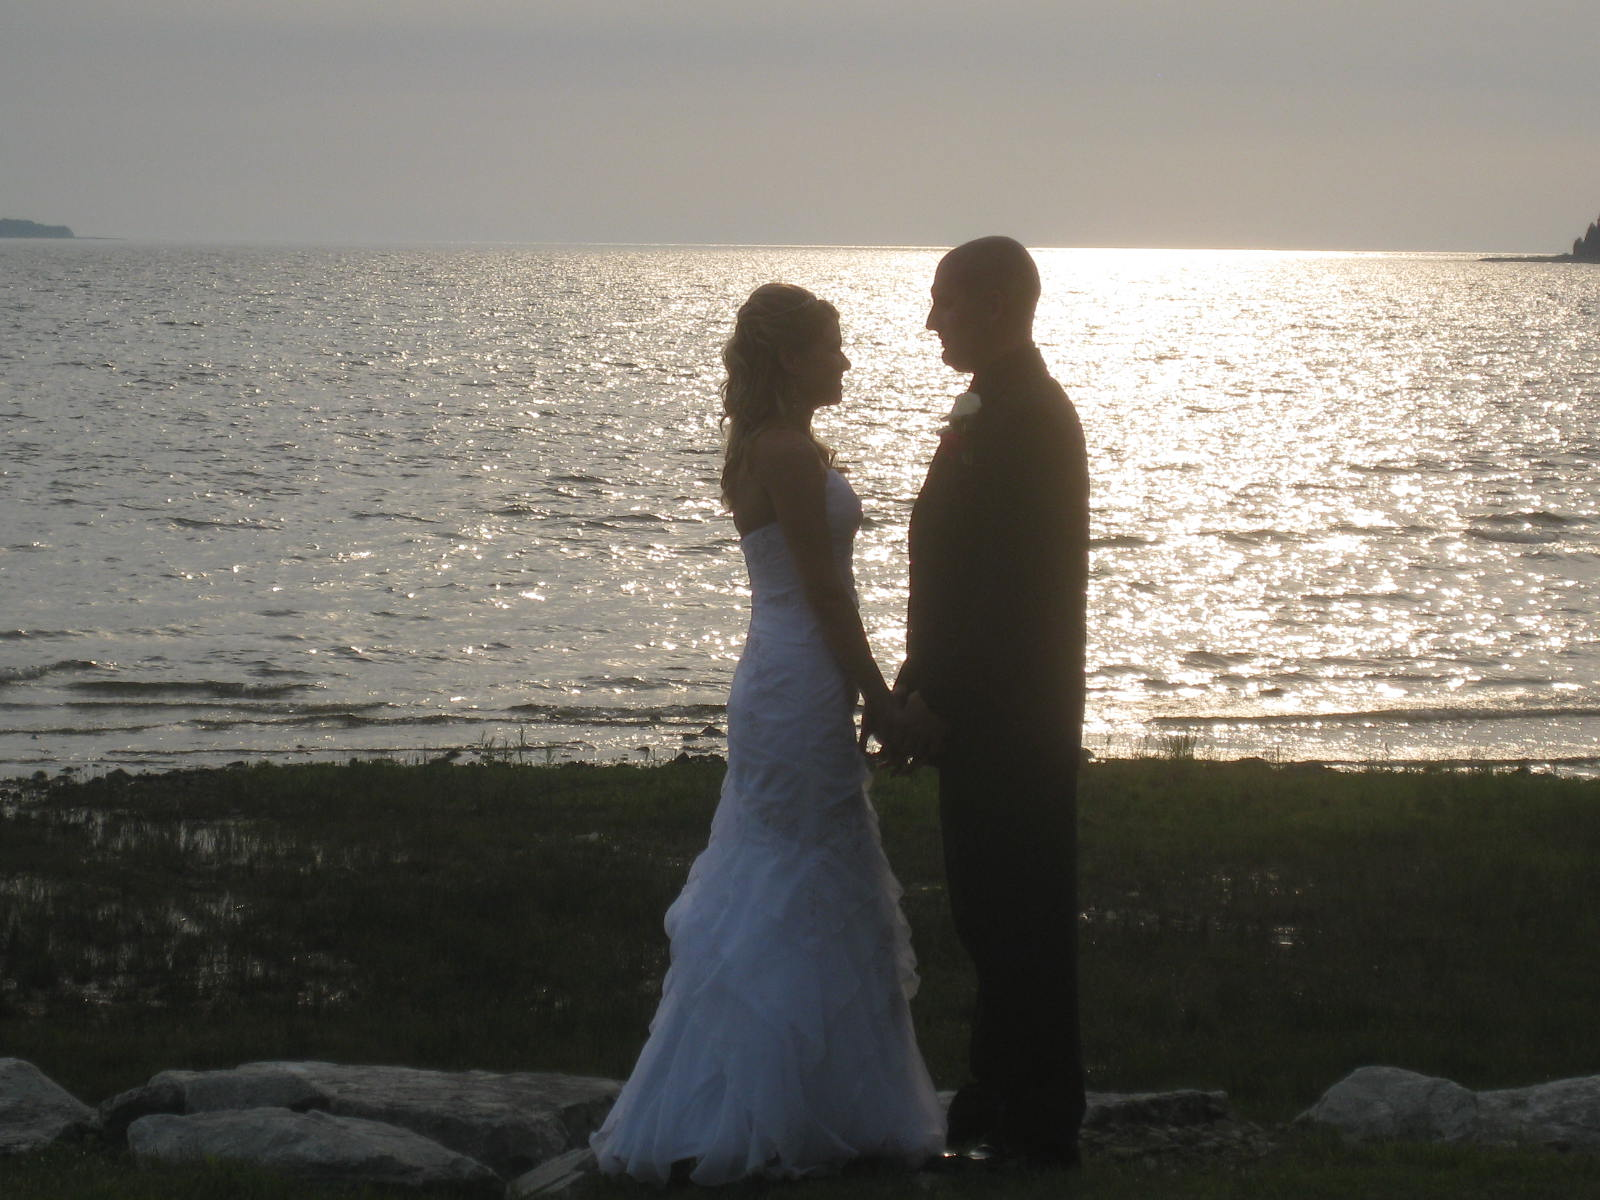 The first reflections of our life together after our wedding at Elope Up North on Lake Michigan.